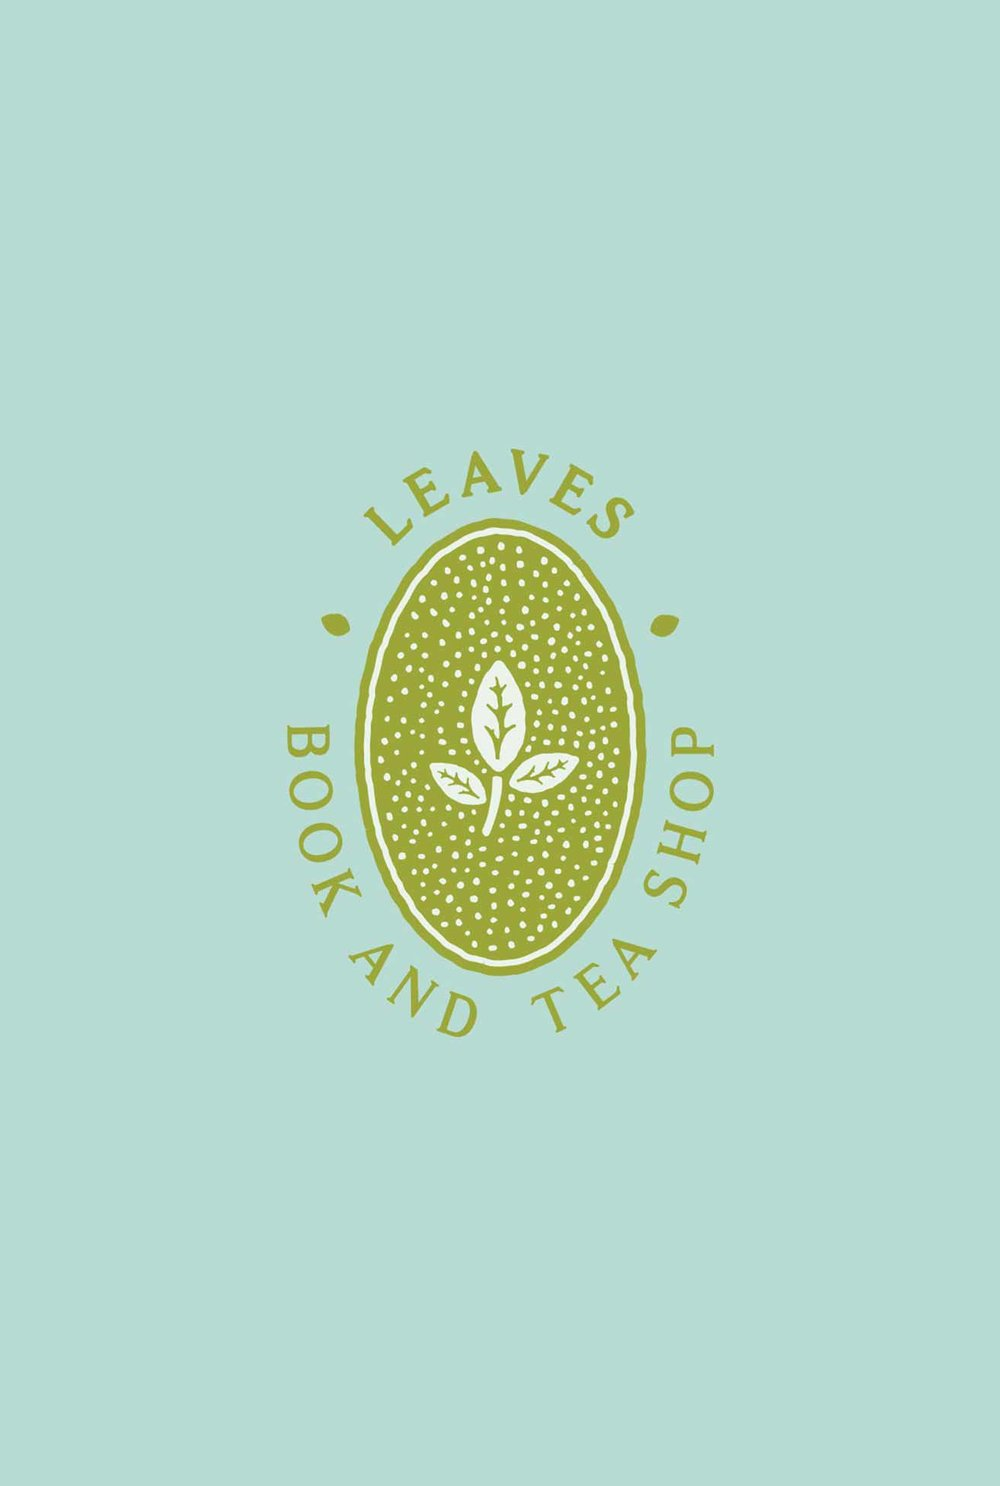 leaves-vert_oval-mark.jpg